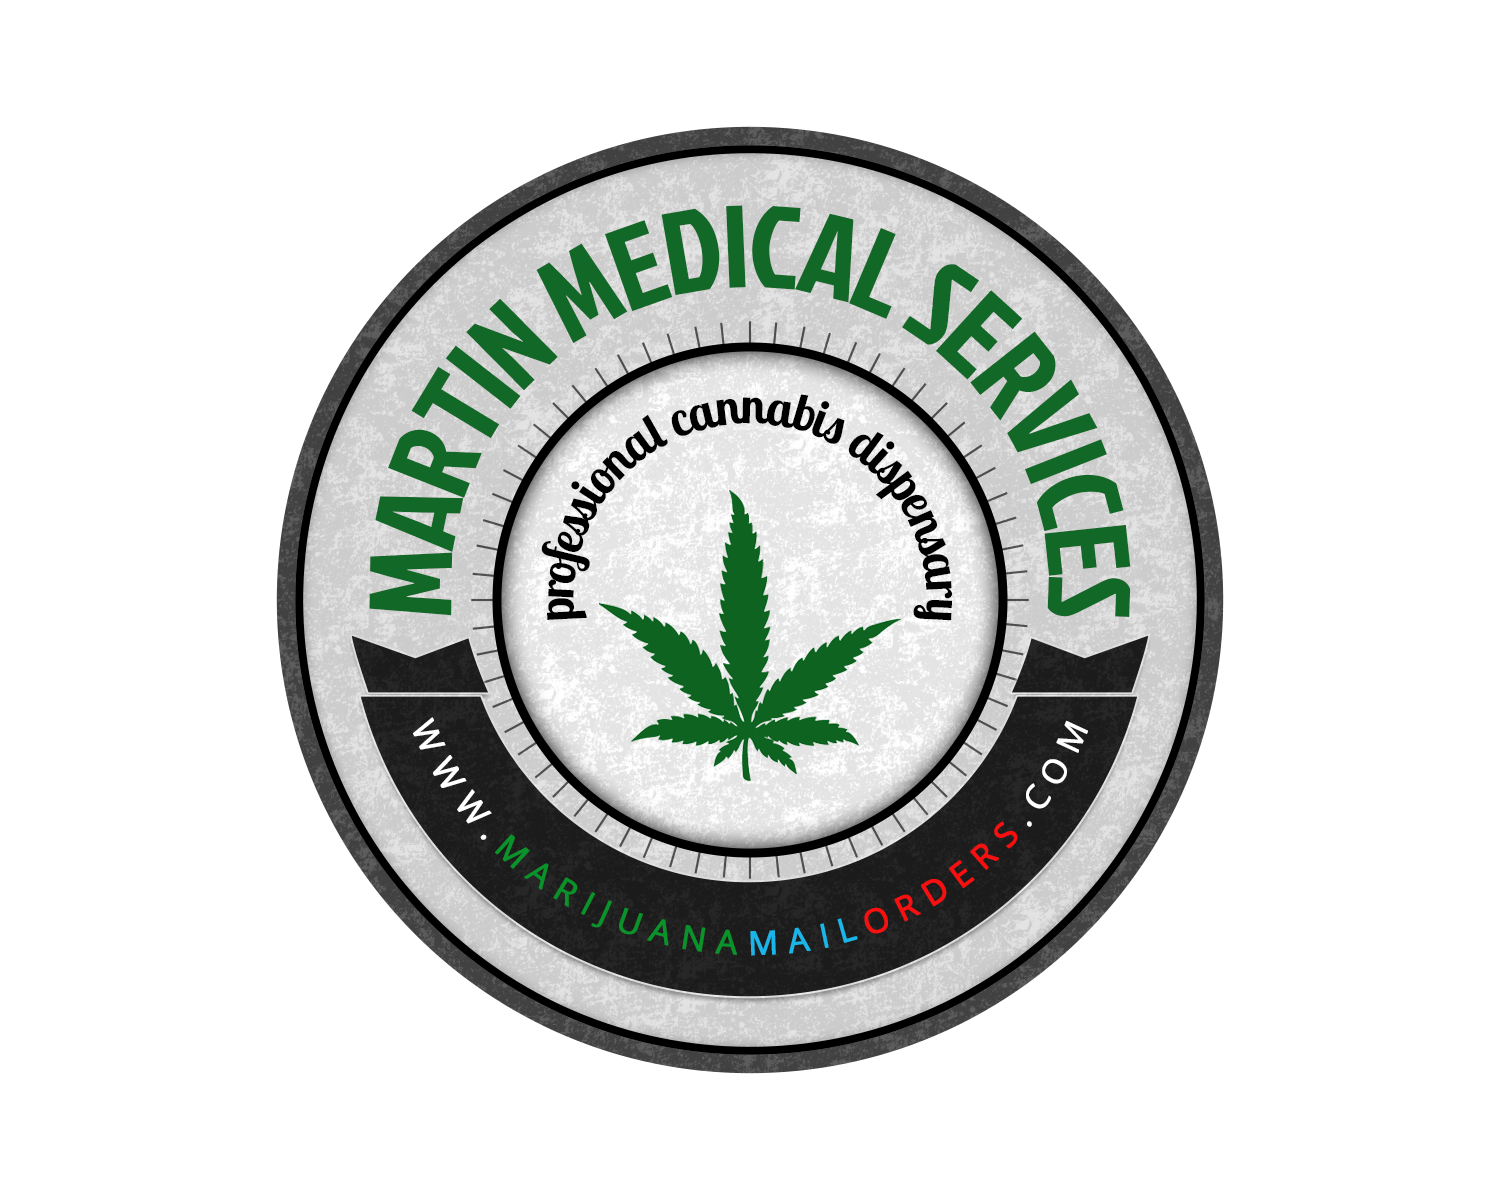 Martin Medical Services MMS Corp